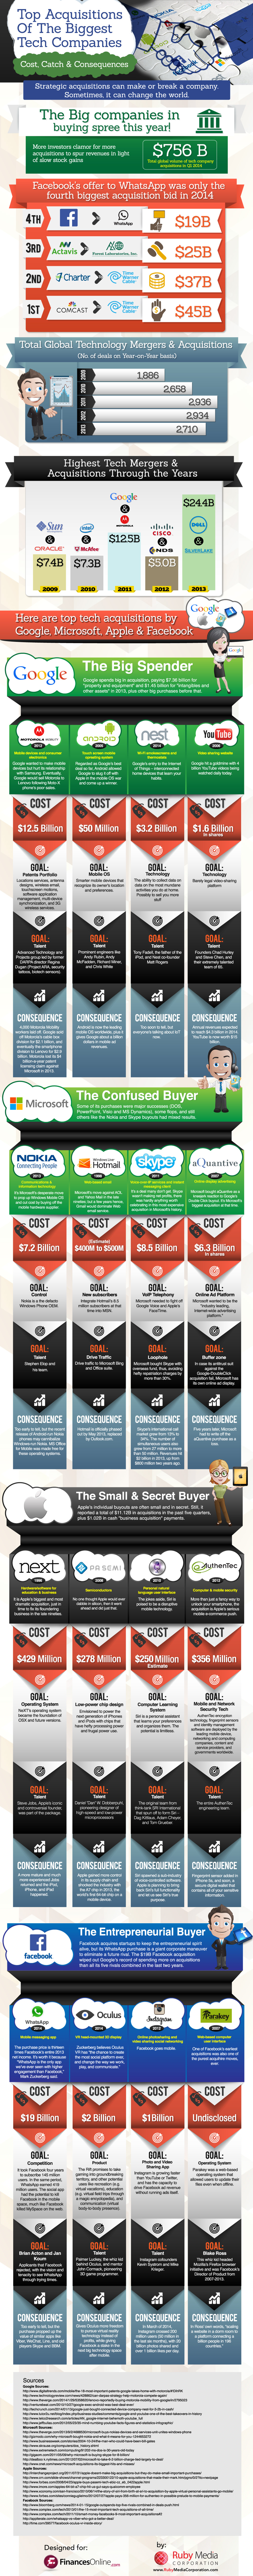 company-acquisitions-infographic